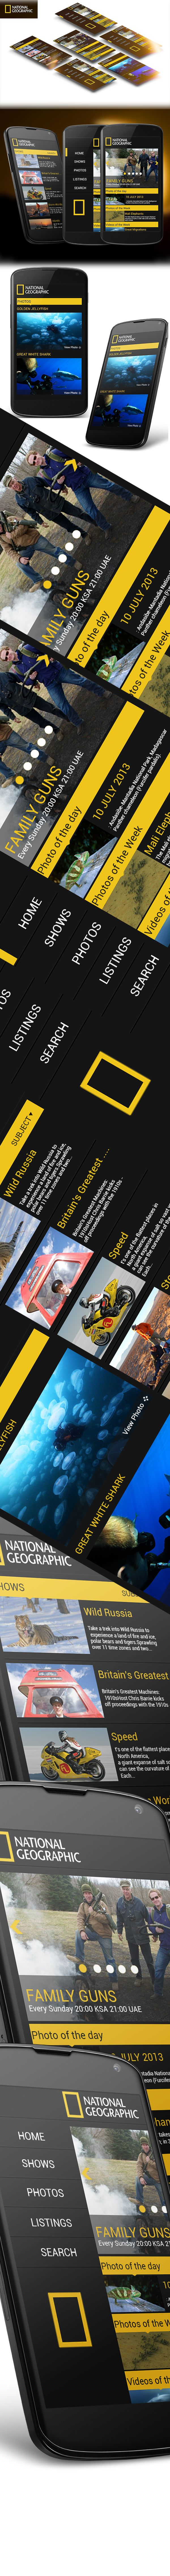 National Geographic Android App by Mohamed Monem, via Behance